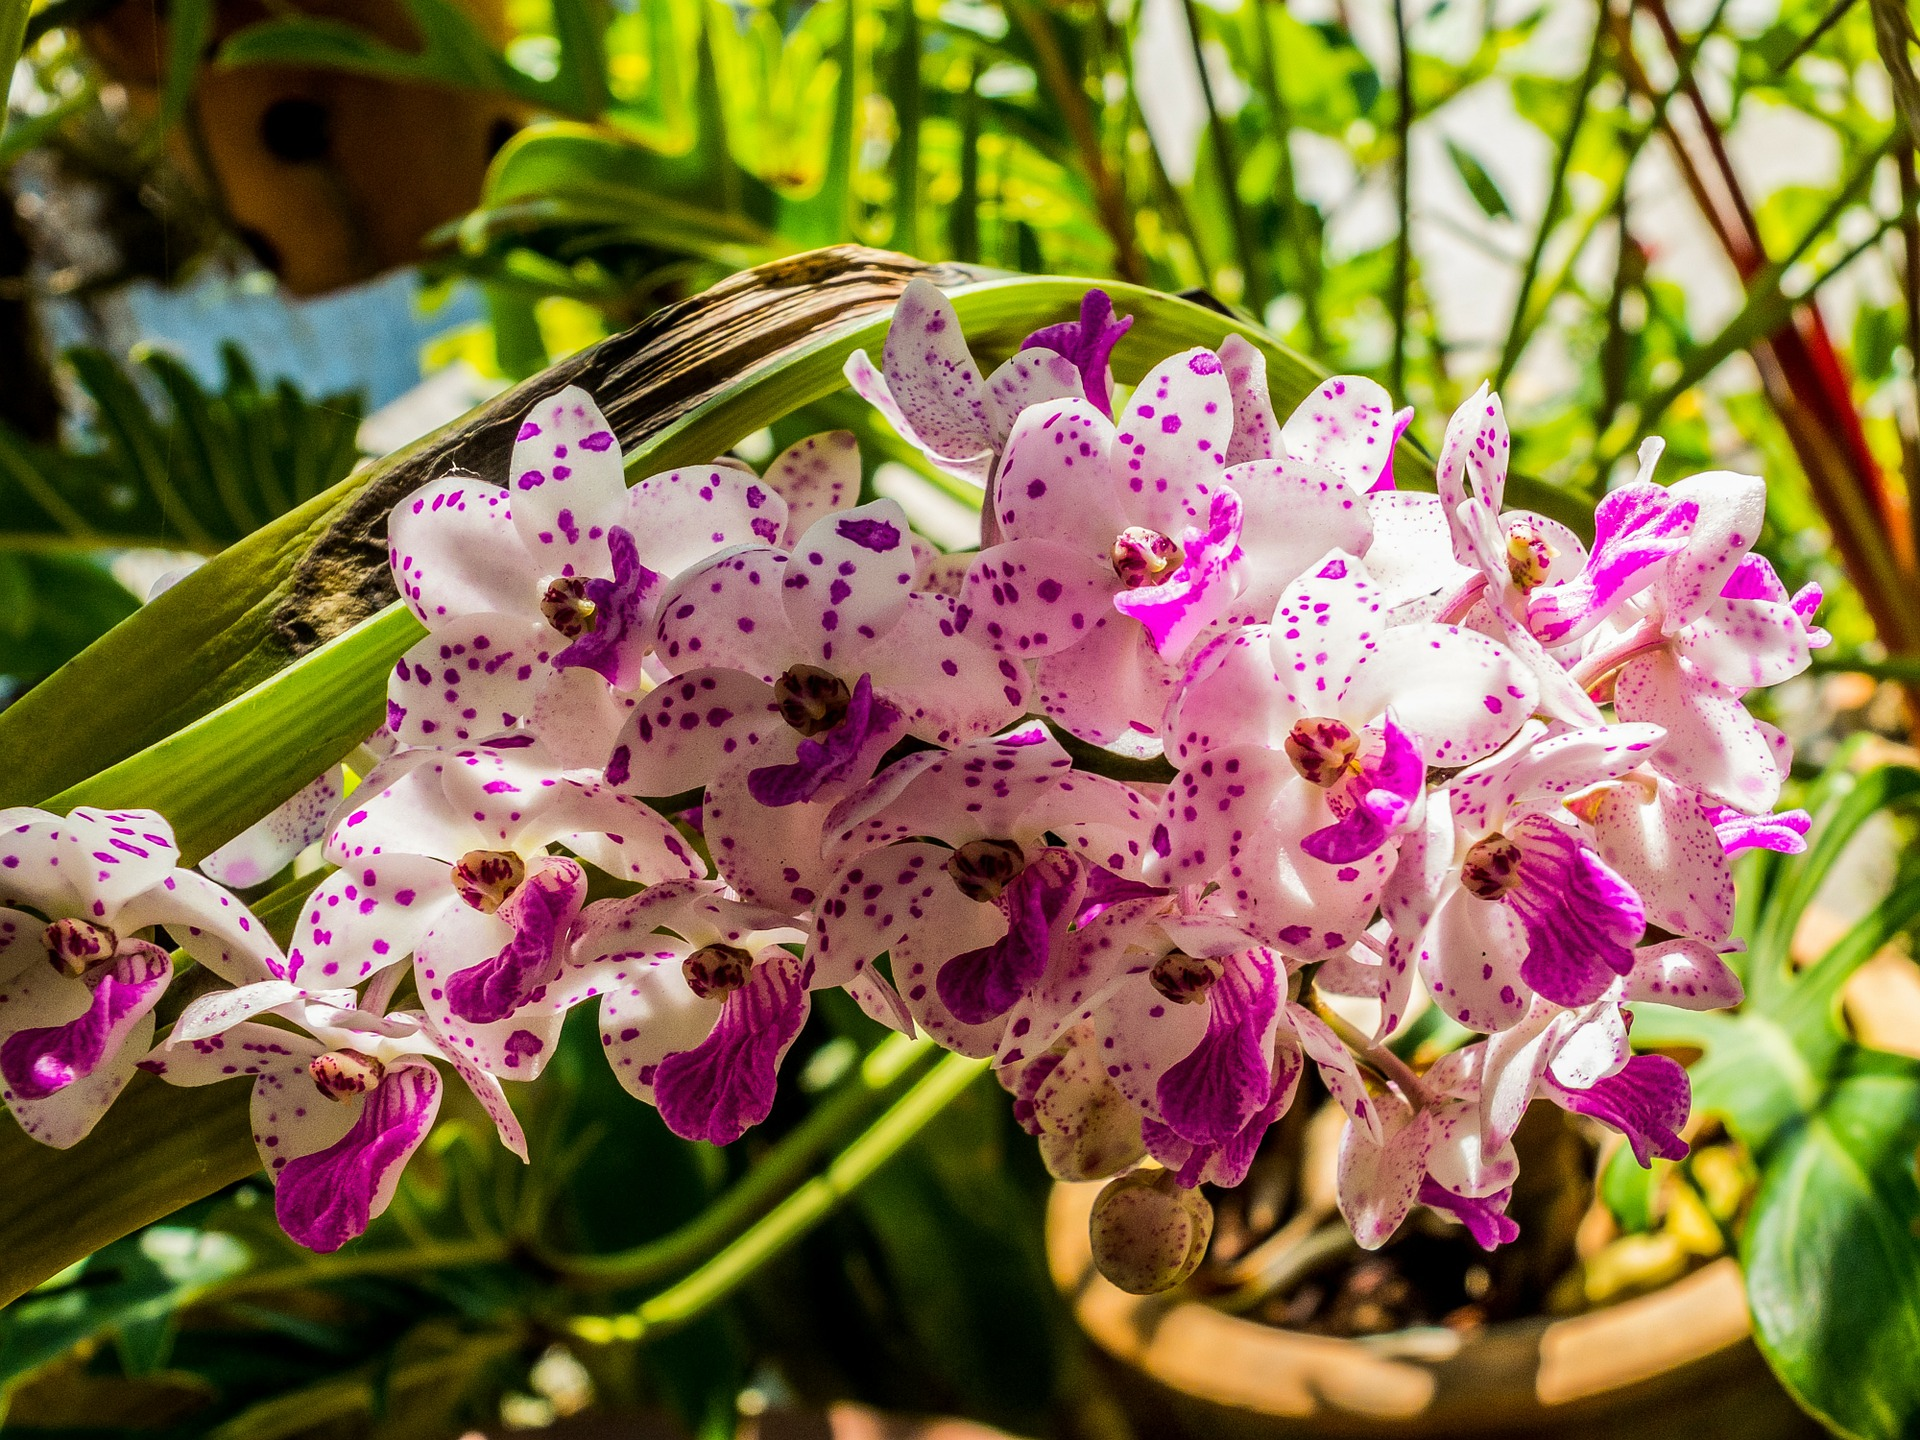 orchid-262640_1920